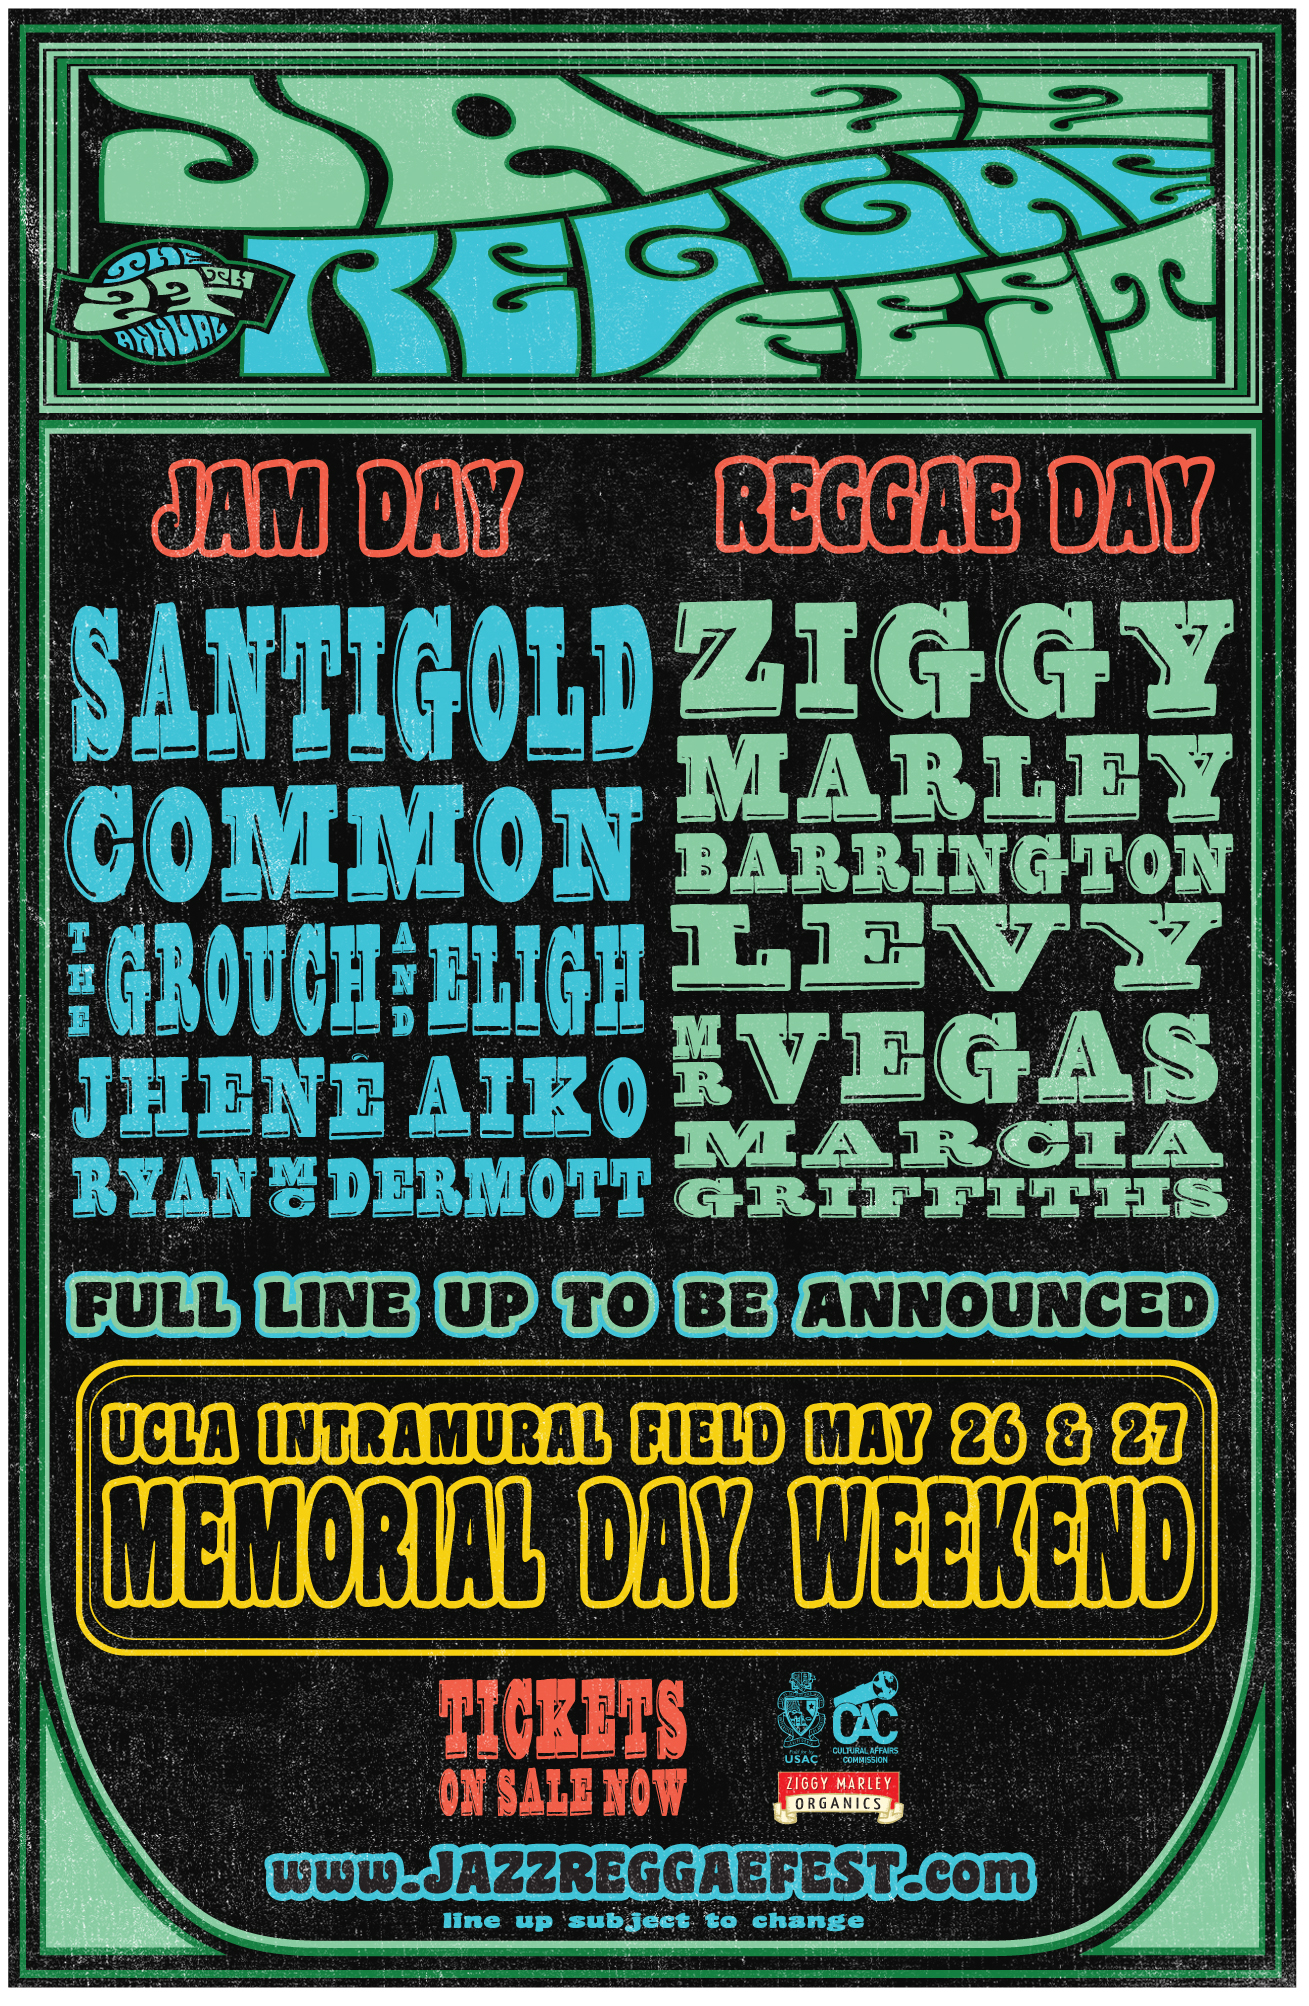 The 27th Annual JazzReggae Festival @ UCLA 2013! Memorial Day Weekend May 26 & 27